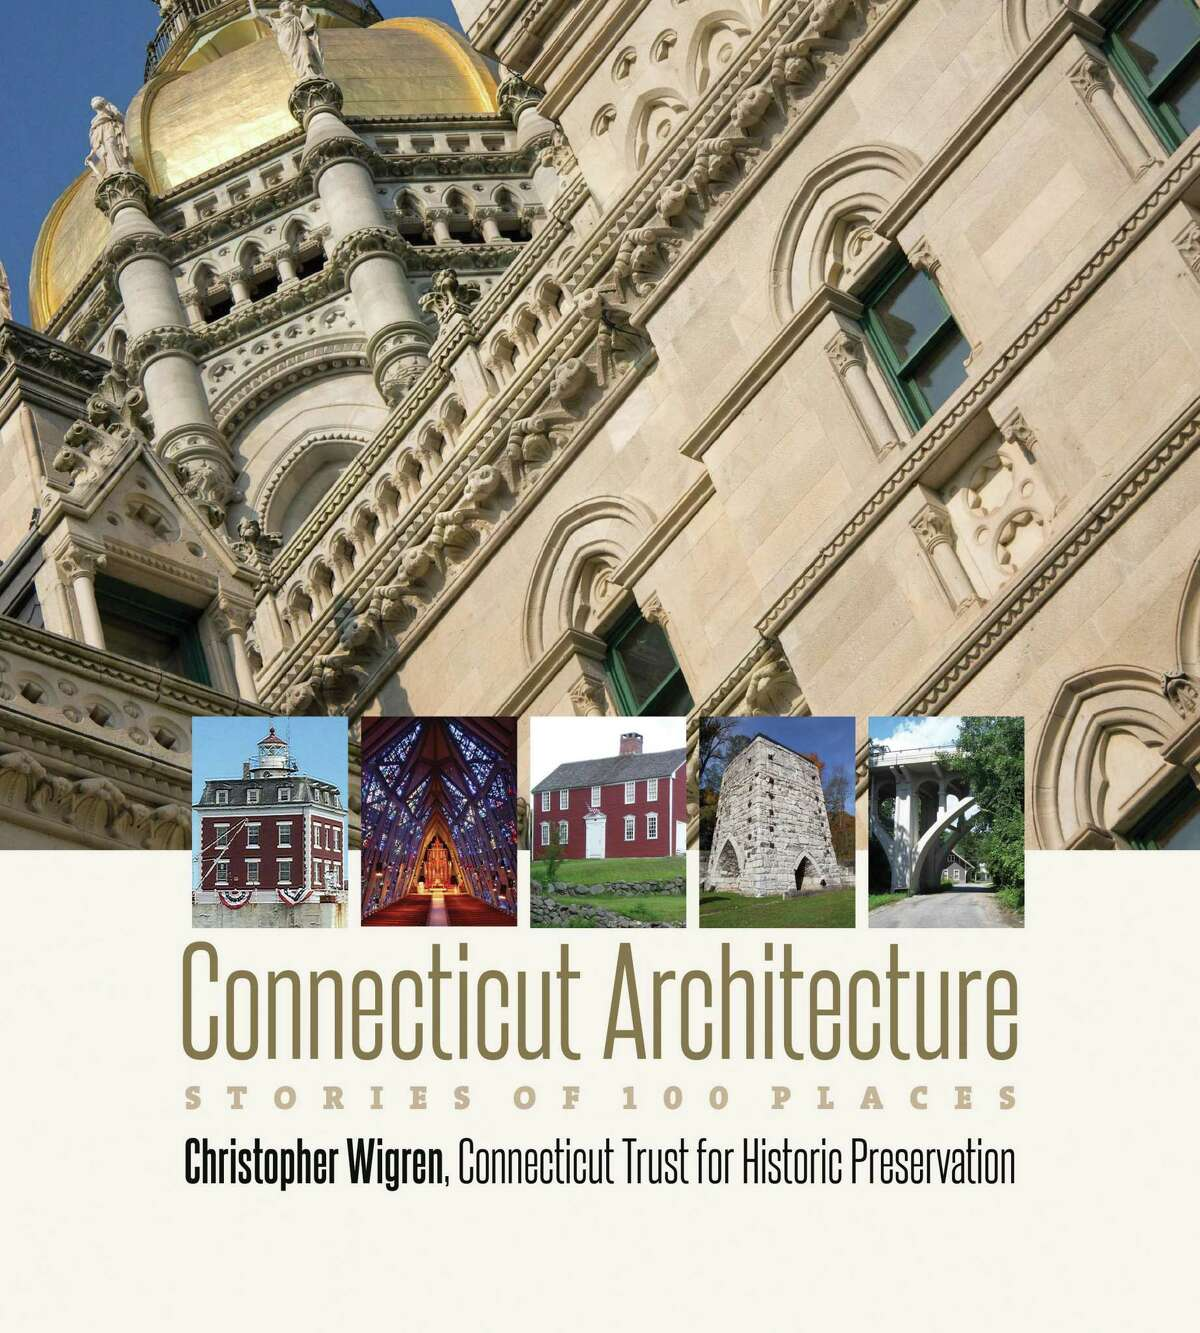 """Christopher Wigren will give a talk on his award-winning book, """"Connecticut Architecture: Stories of 100 Places"""" at the East Hampton Library Feb. 22."""